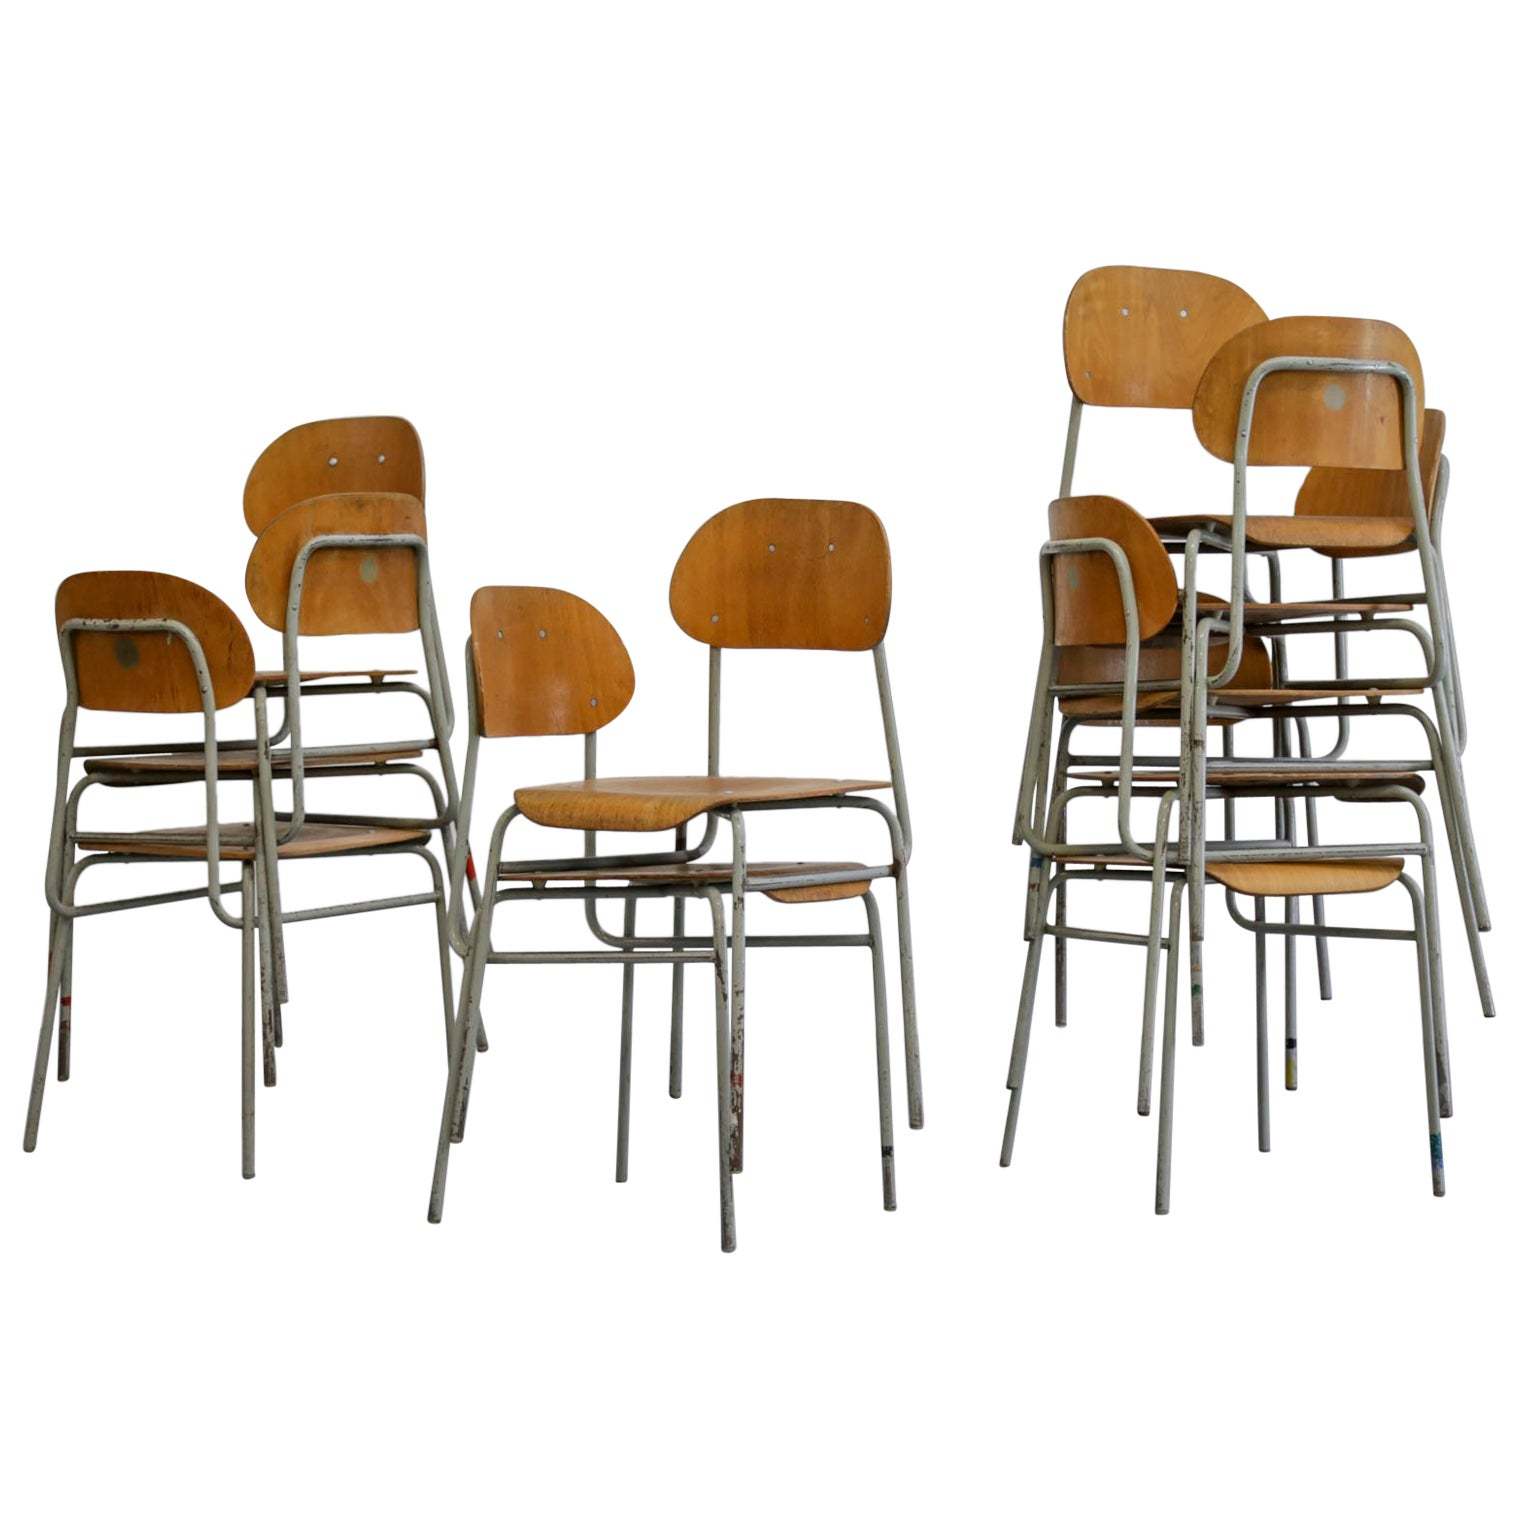 Set of Ten Czech Republic Chairs 1960s, Midcentury Collectivity, Dining